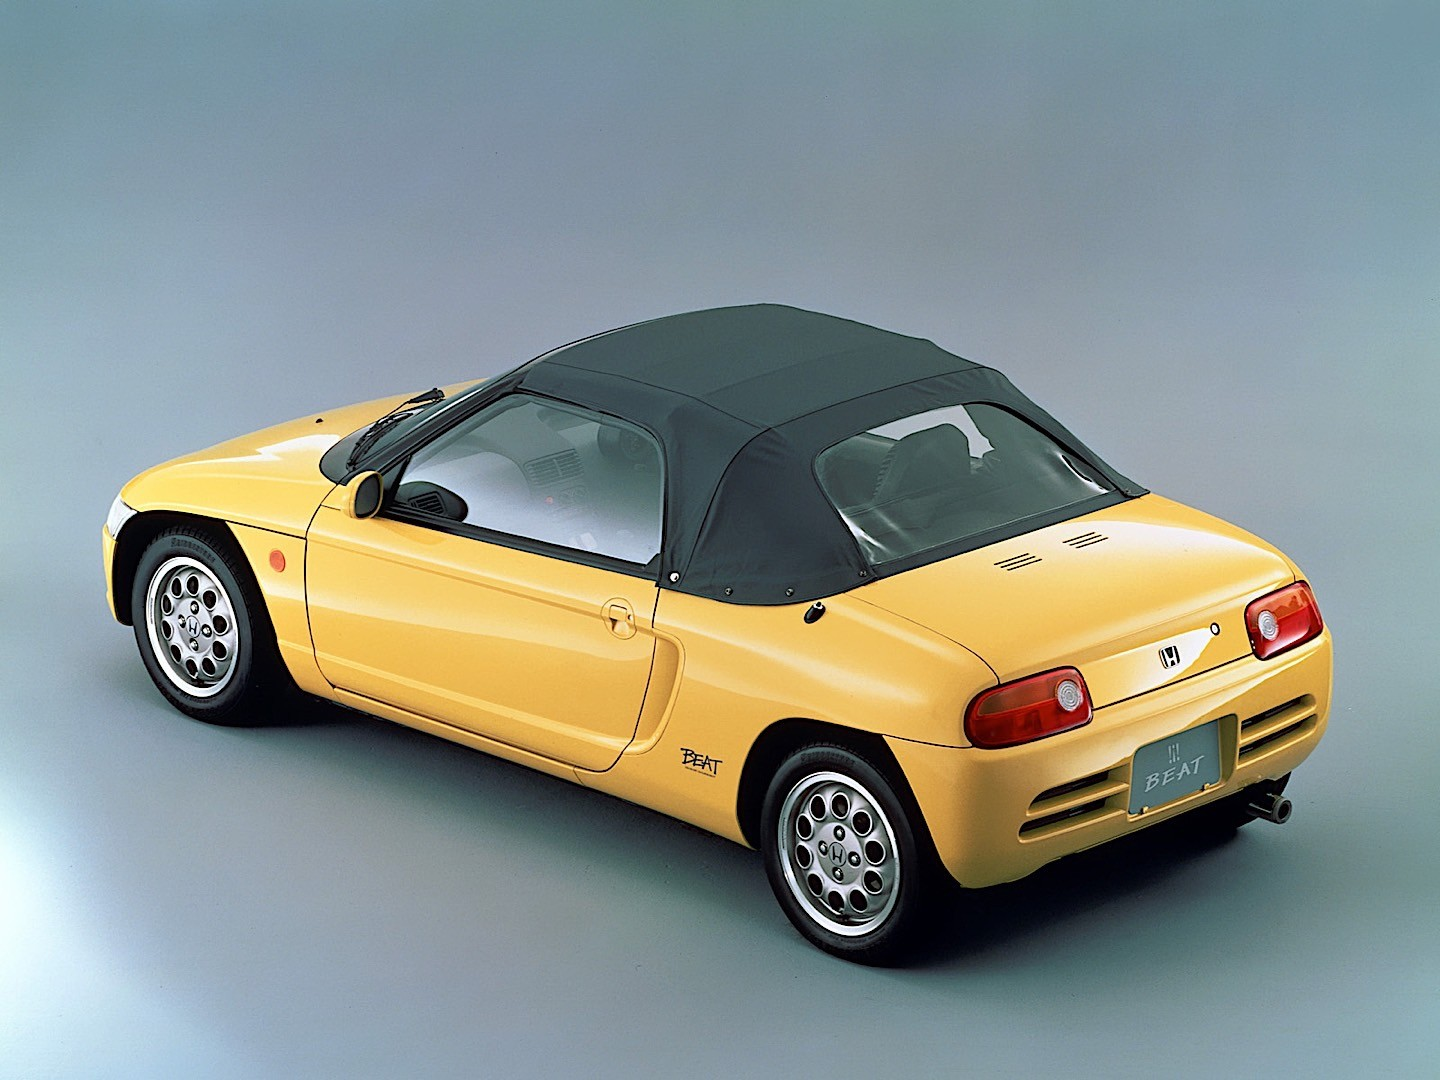 Honda Civic New >> HONDA Beat specs & photos - 1991, 1992, 1993, 1994, 1995, 1996 - autoevolution